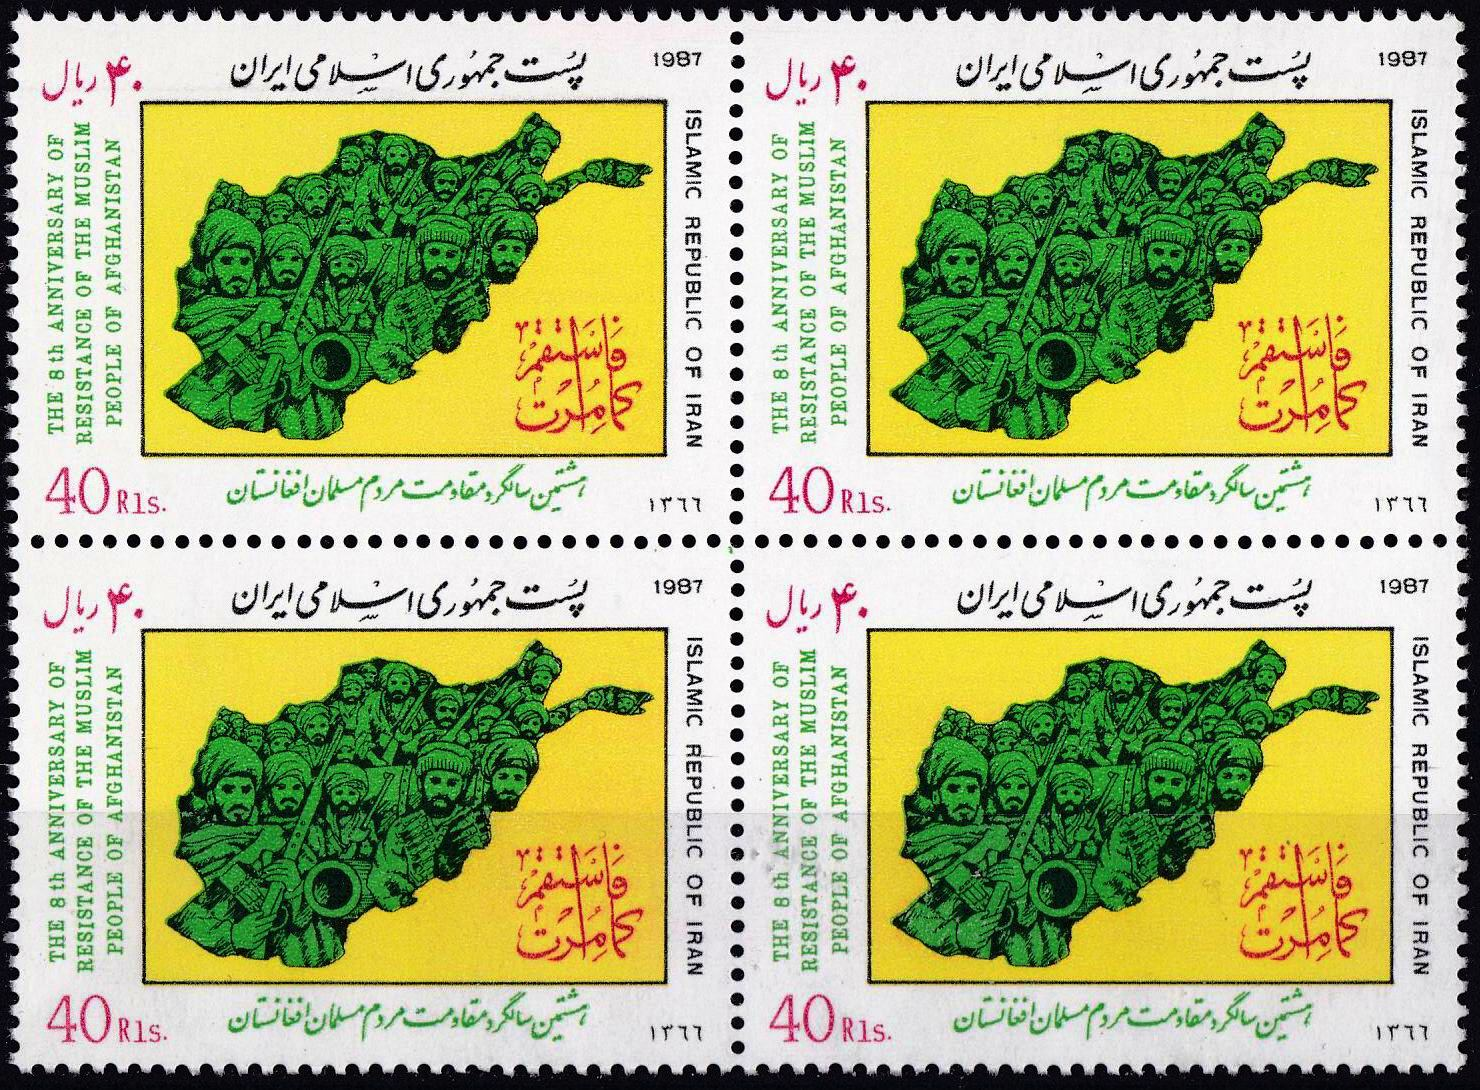 Iran 1987 Stamp Resistance Of Muslims In Afghanistan MNH